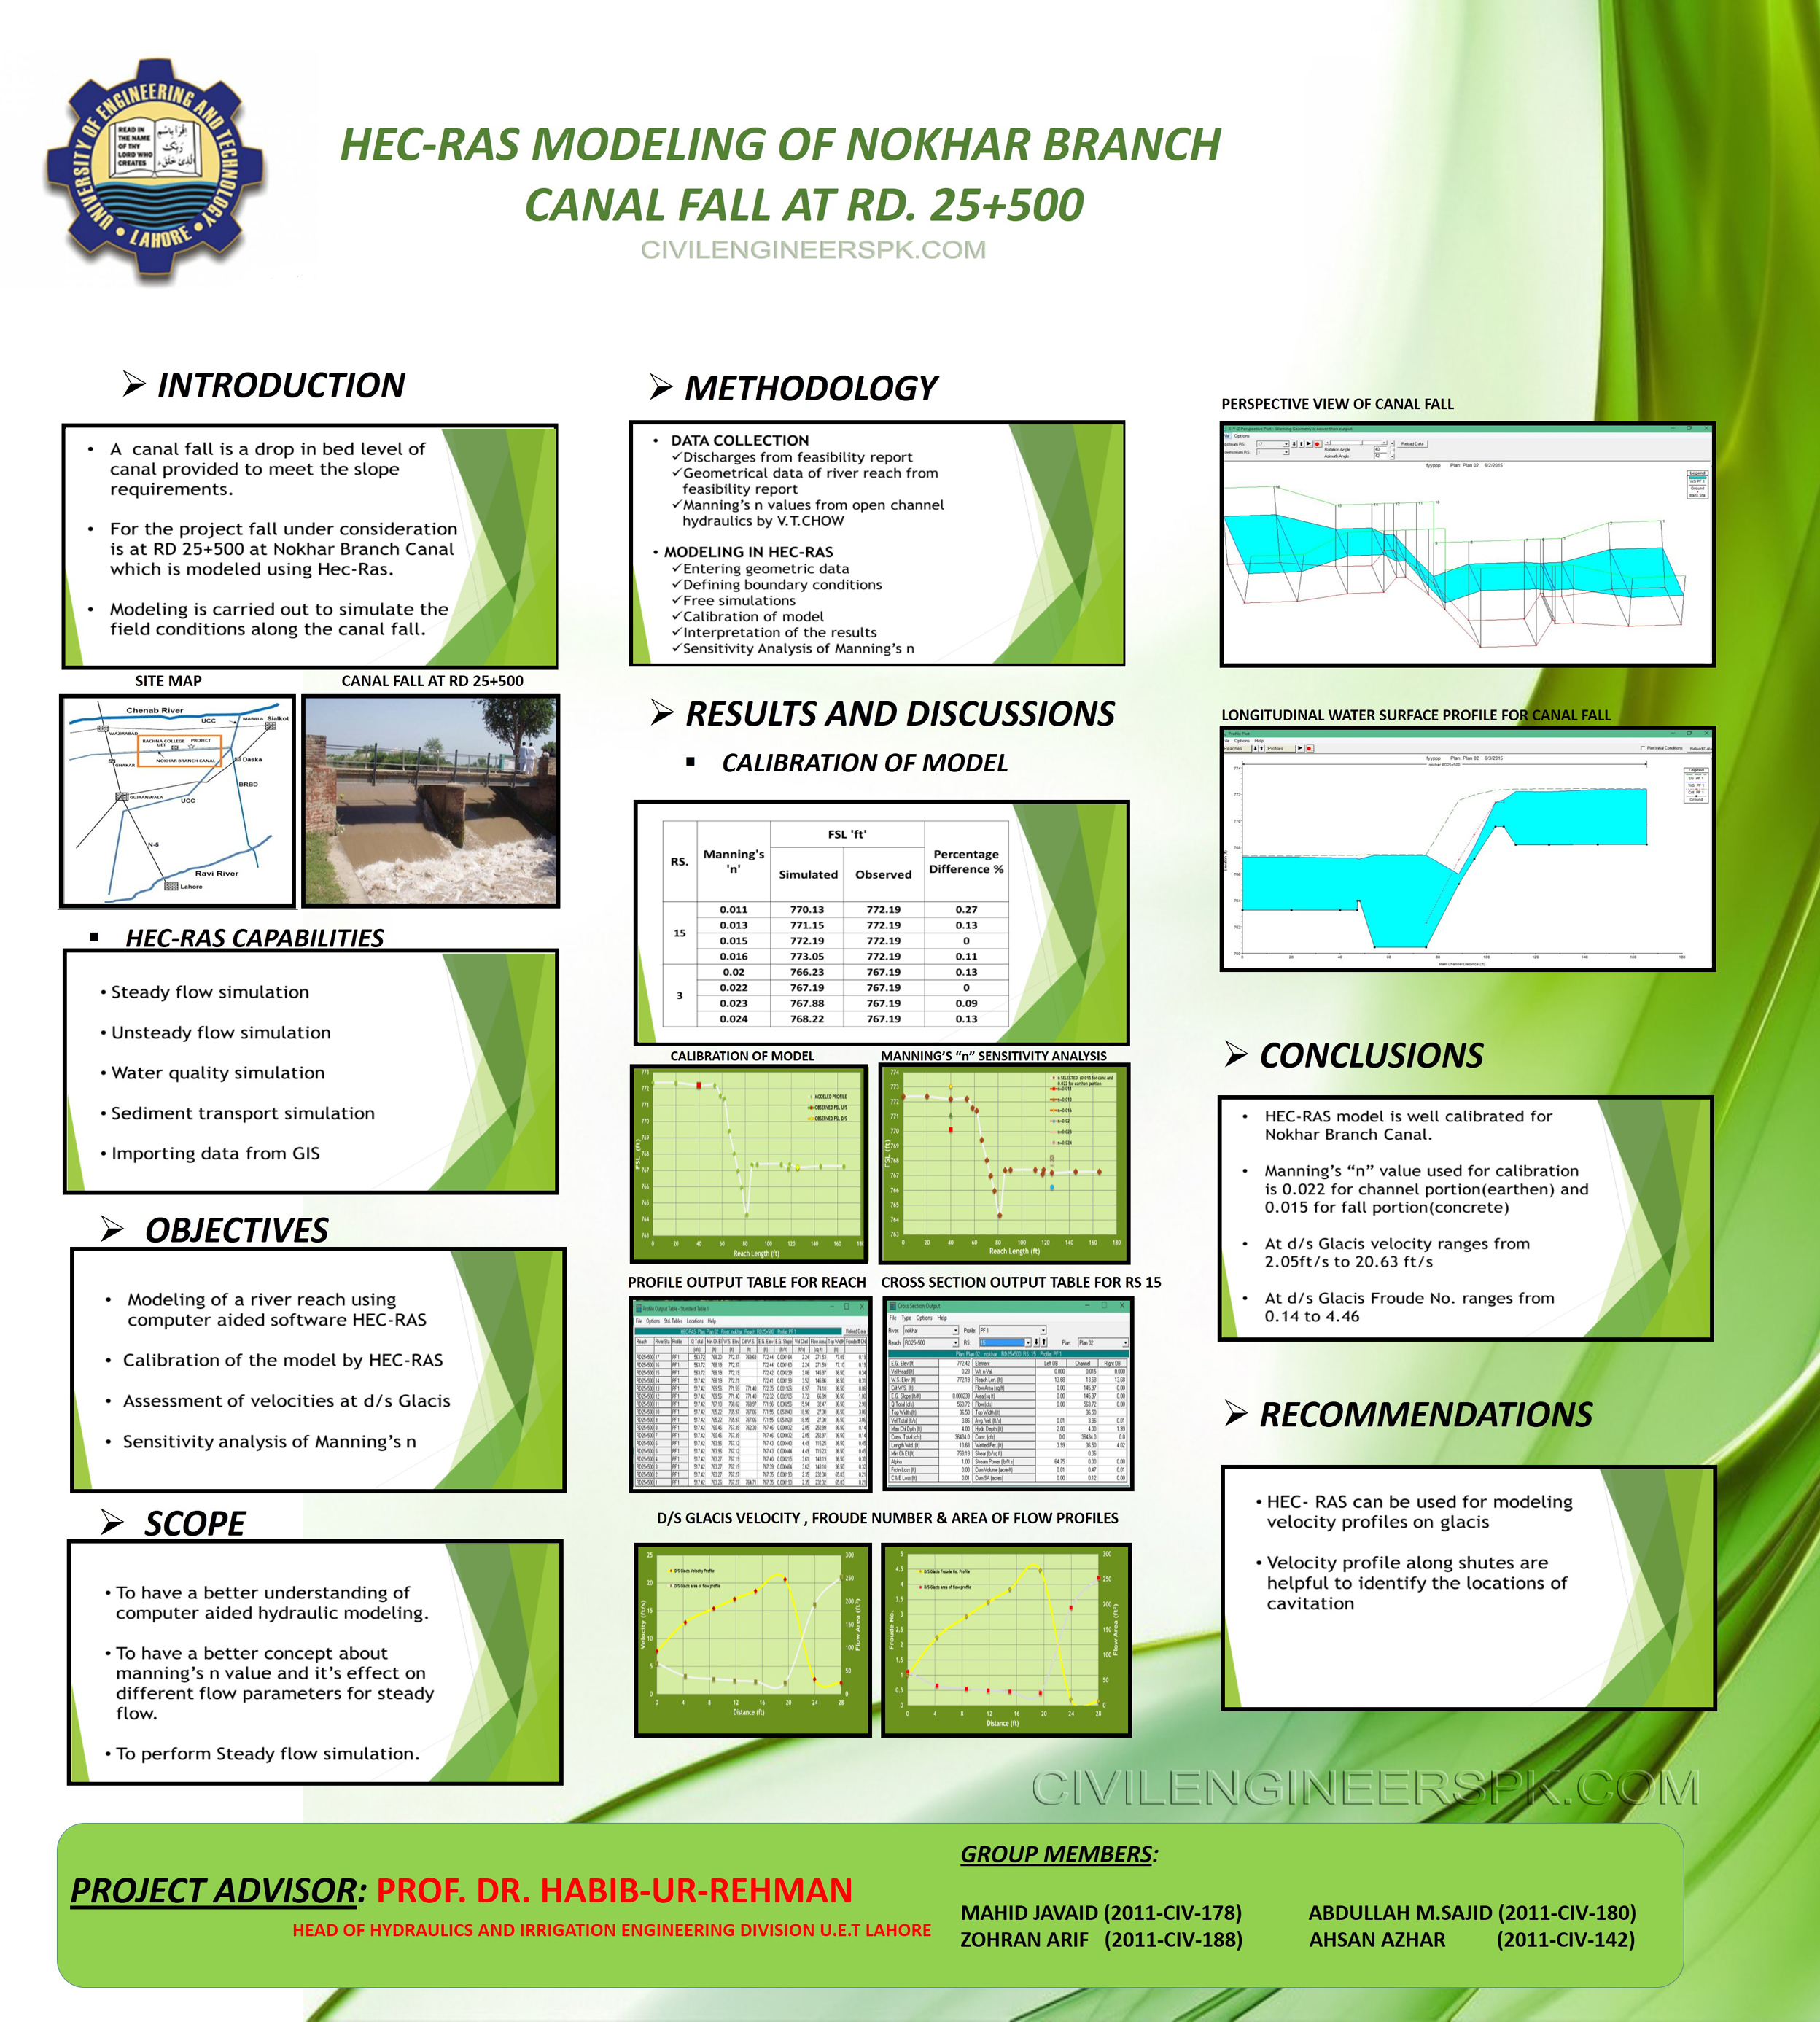 poster presentation 2011-2015 - civil engineers pk, Presentation templates